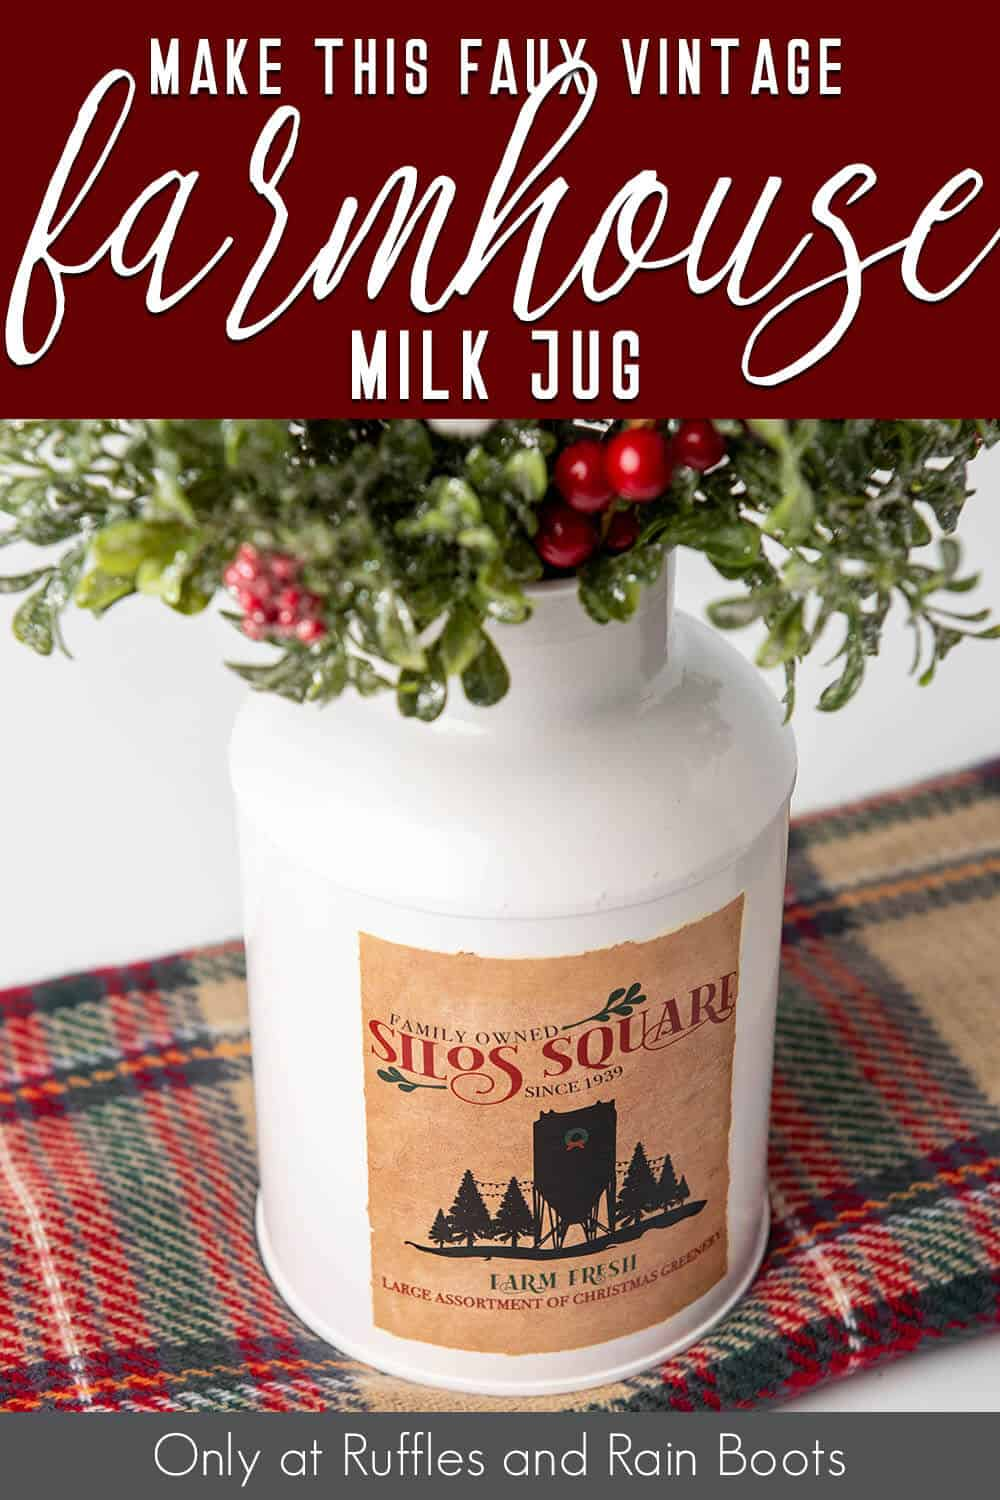 easy way to decorate a milk jug for farmhouse decor with text which reads make this easy vintage farmhouse milk jug